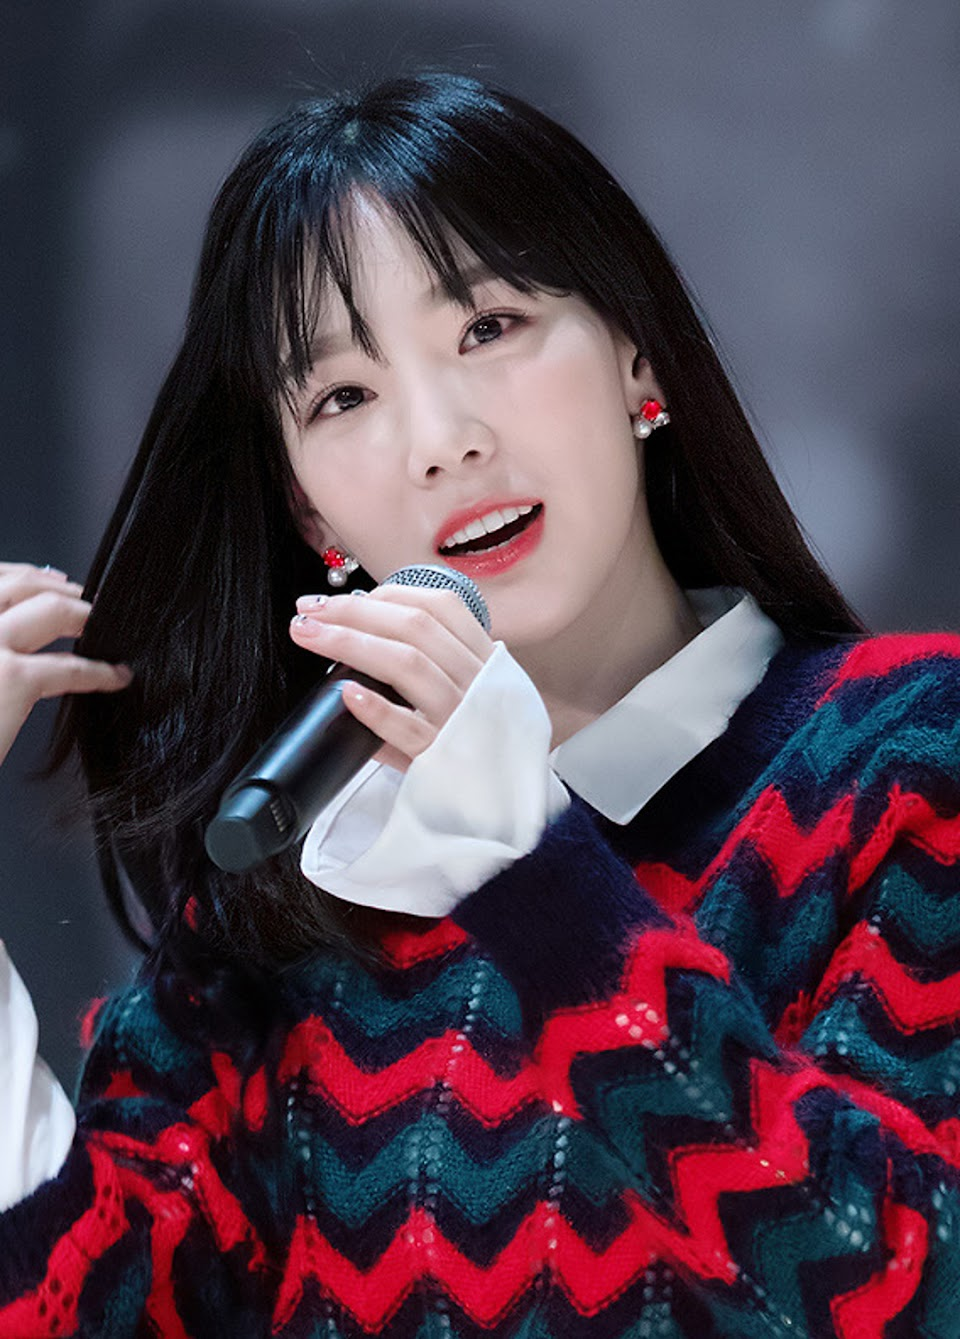 Kim_Tae-yeon_at_a_fansigning_event_on_December_17,_2017_(7)